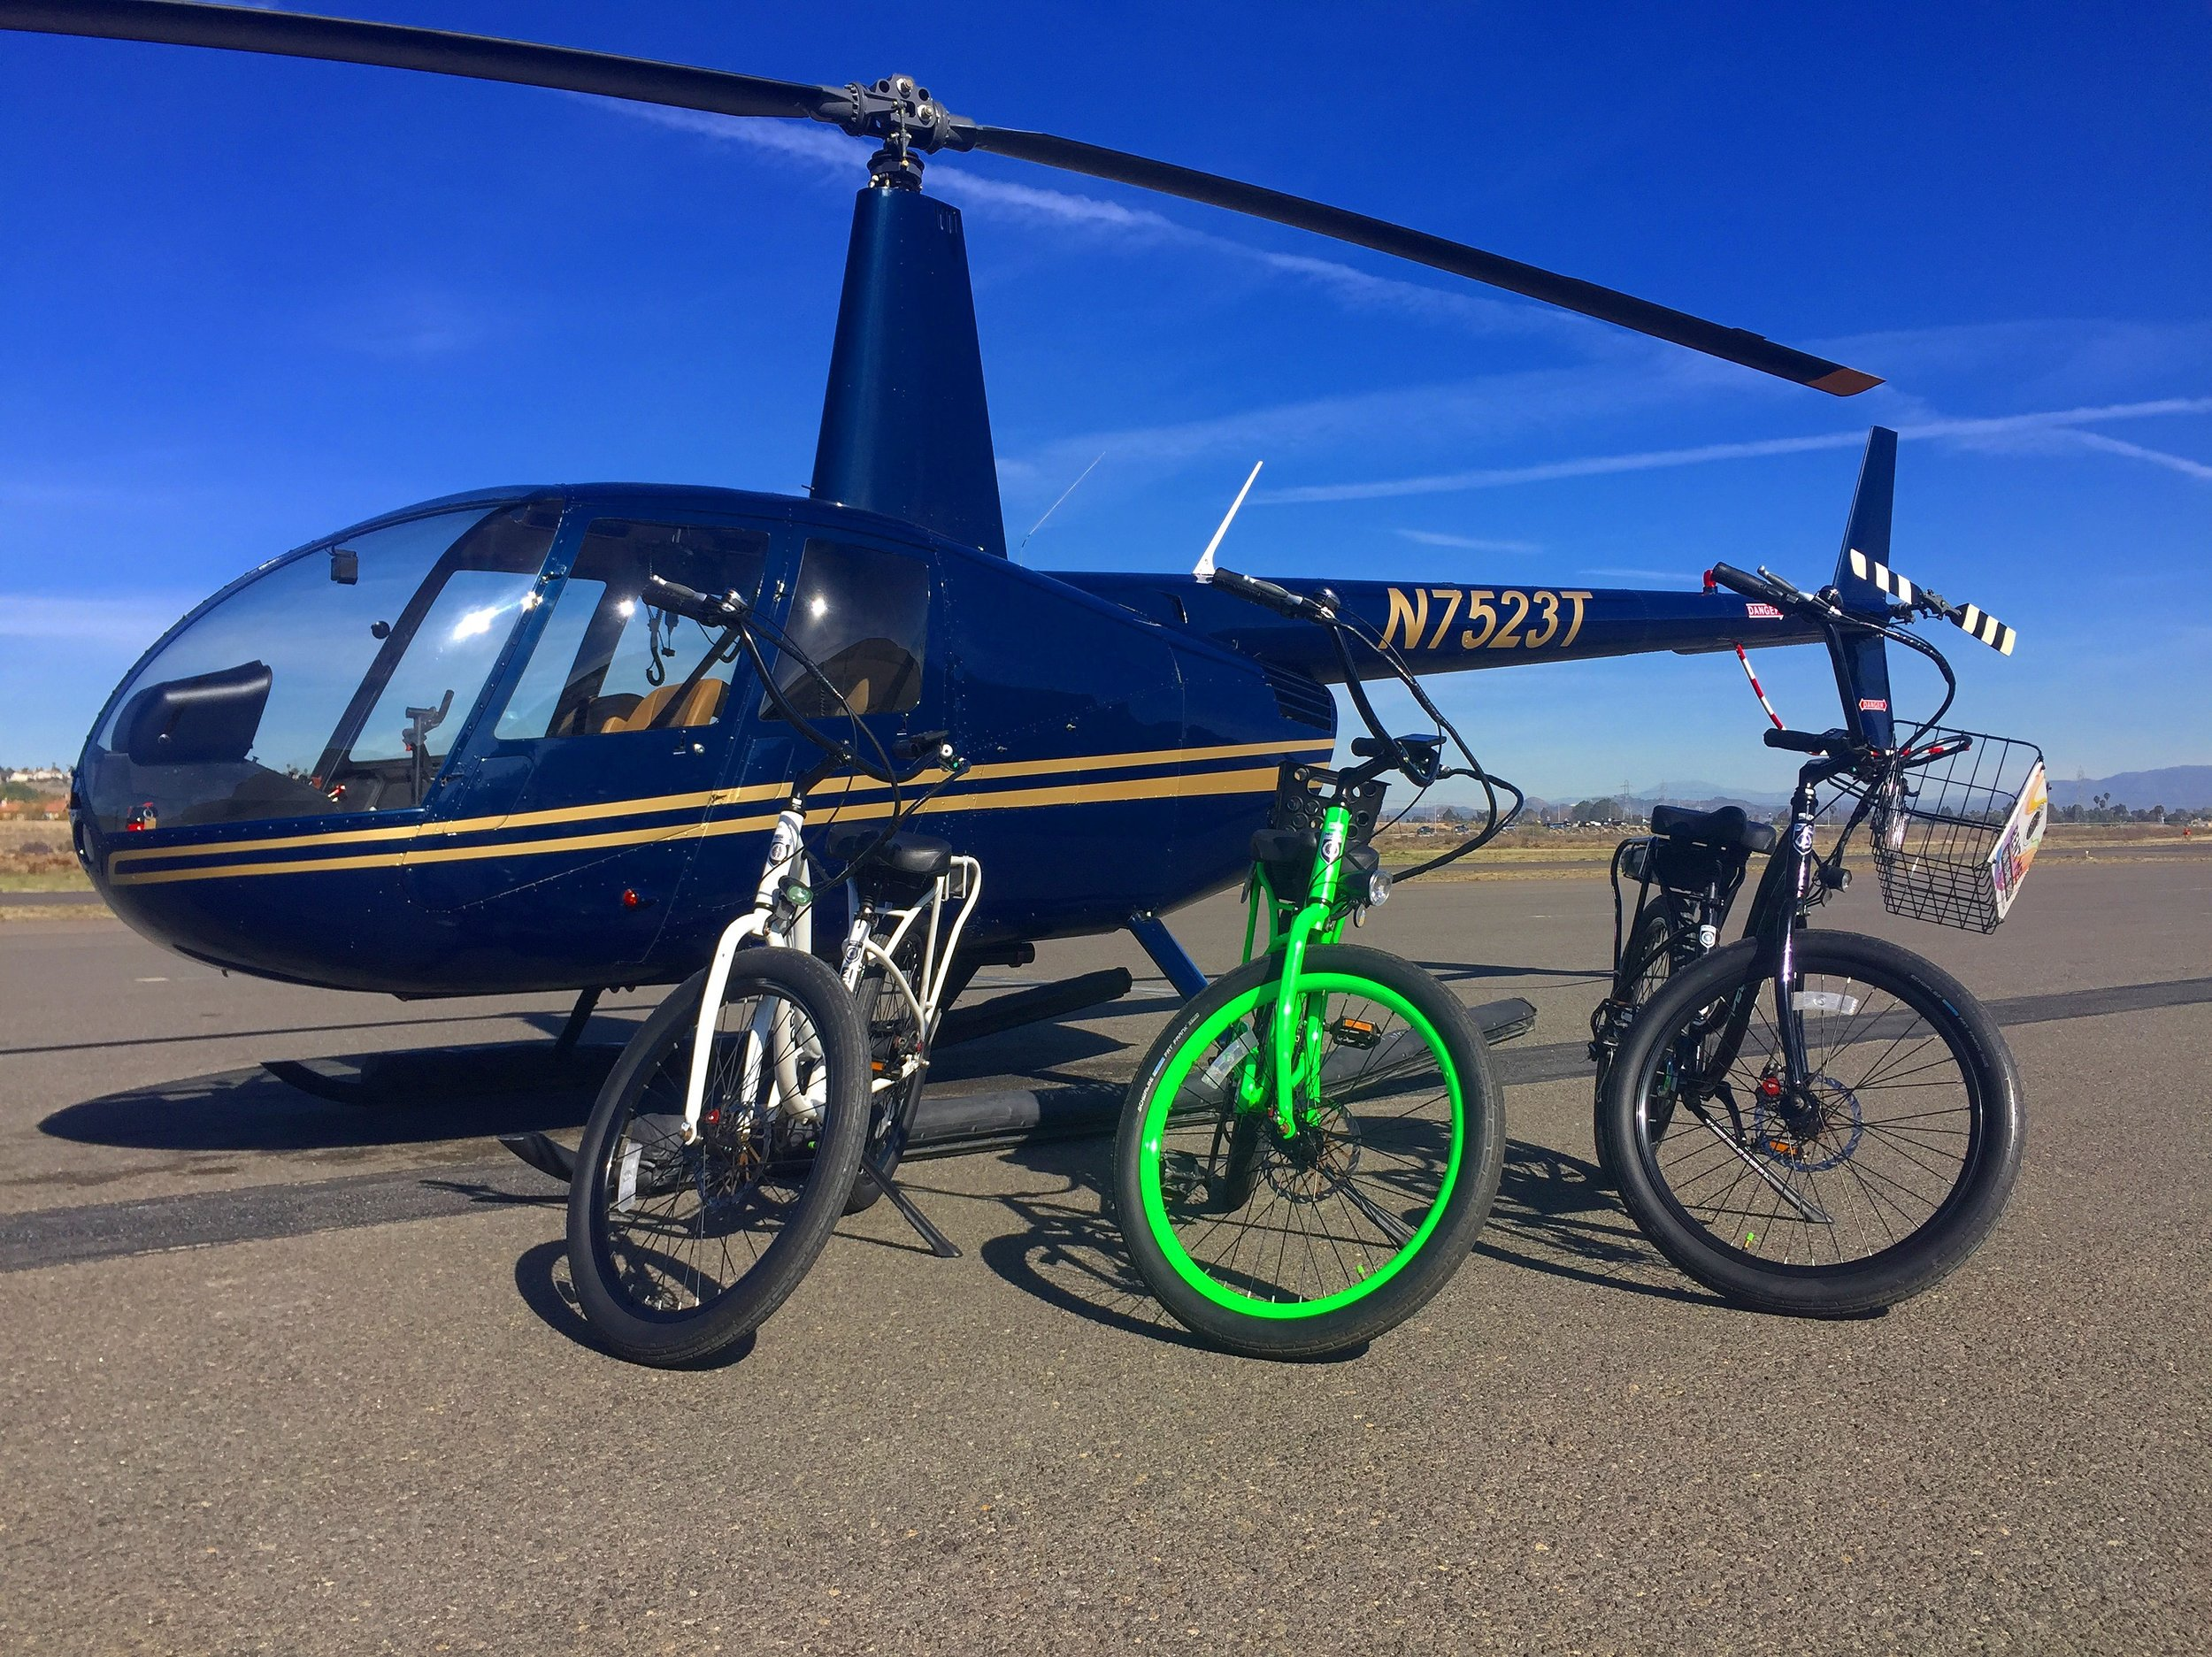 Bike and Helicopter Ride San Diego